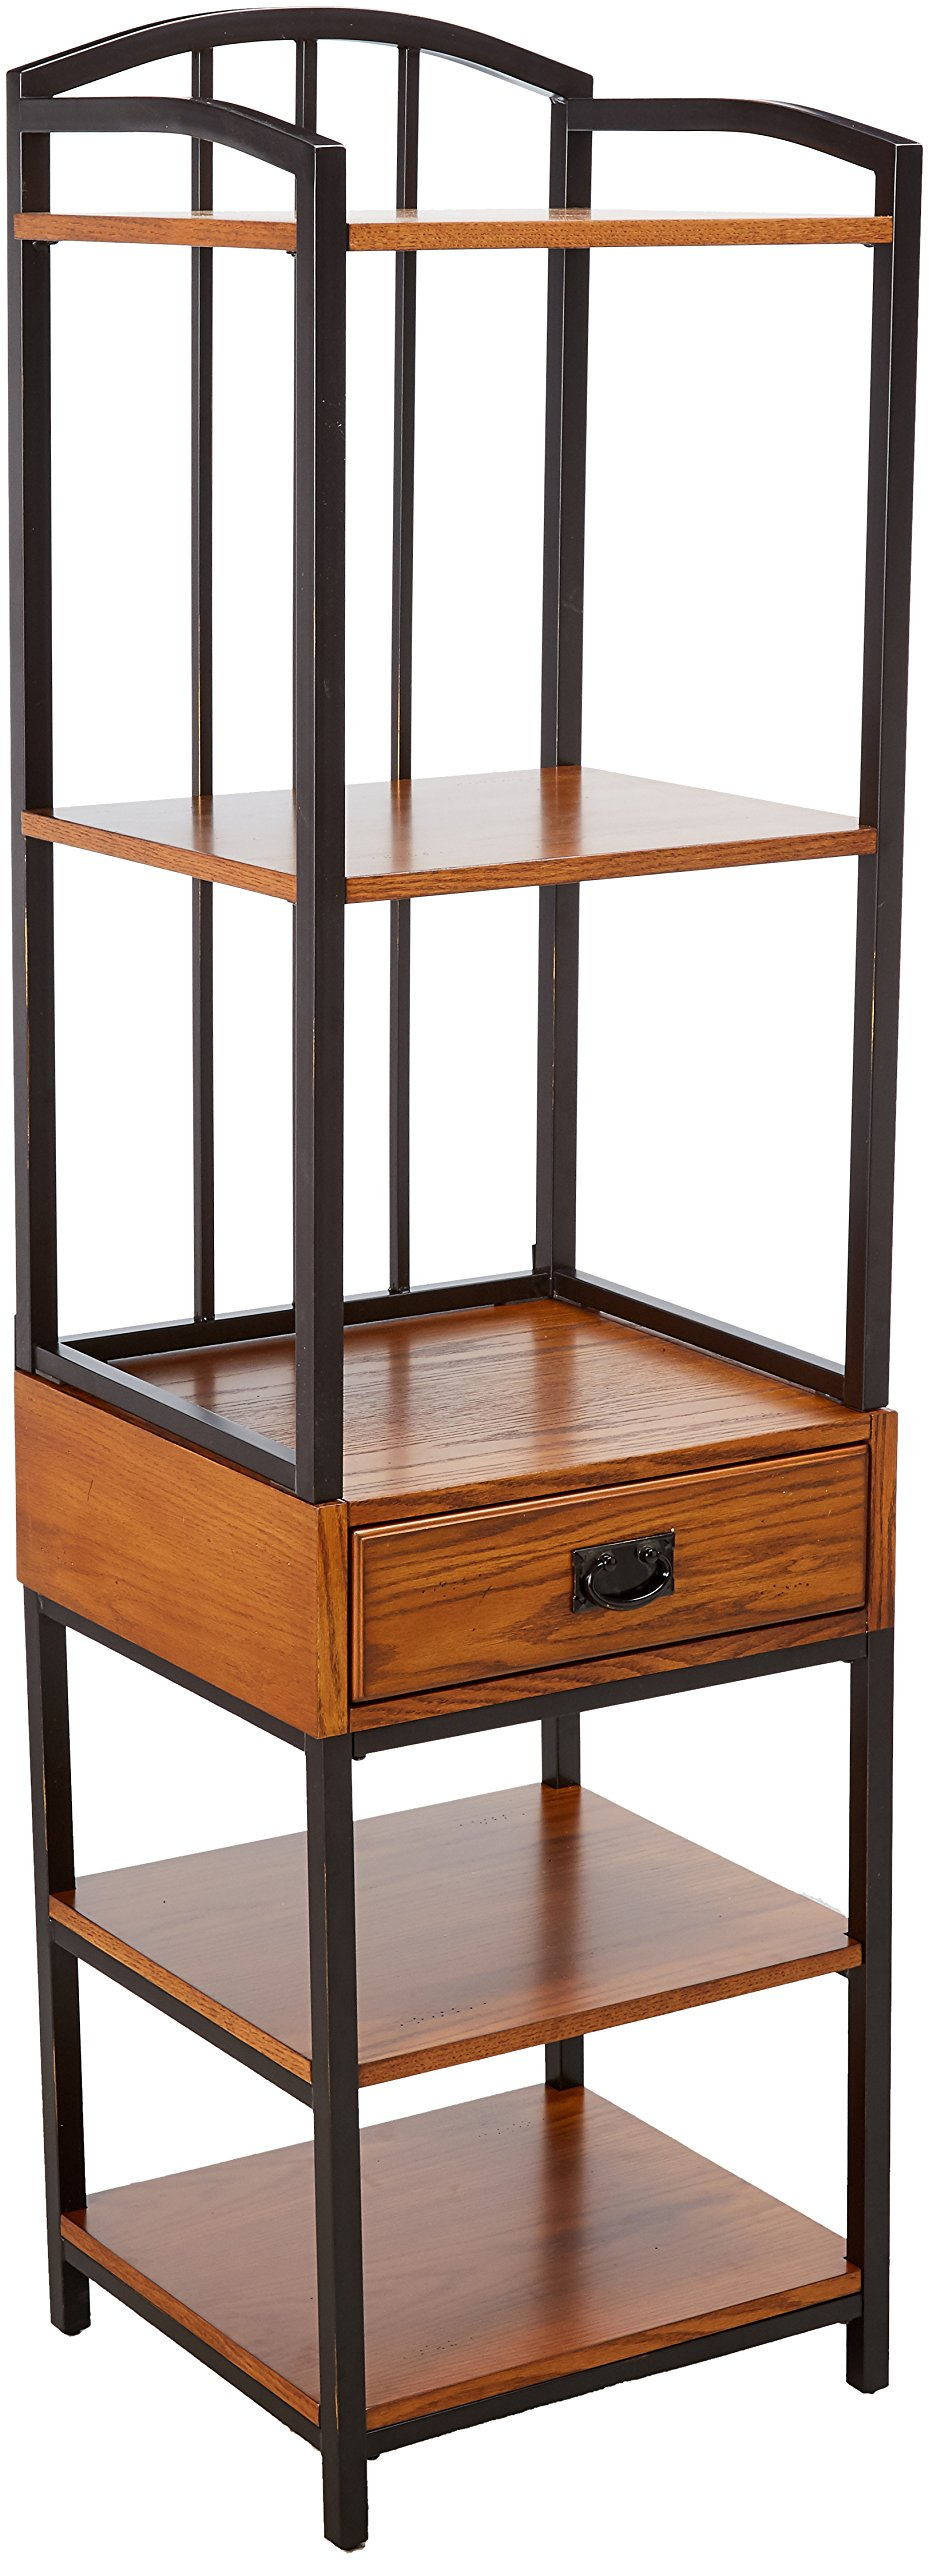 Modern Craftsman Distressed Oak Gaming Tower by Home Styles by Home Styles